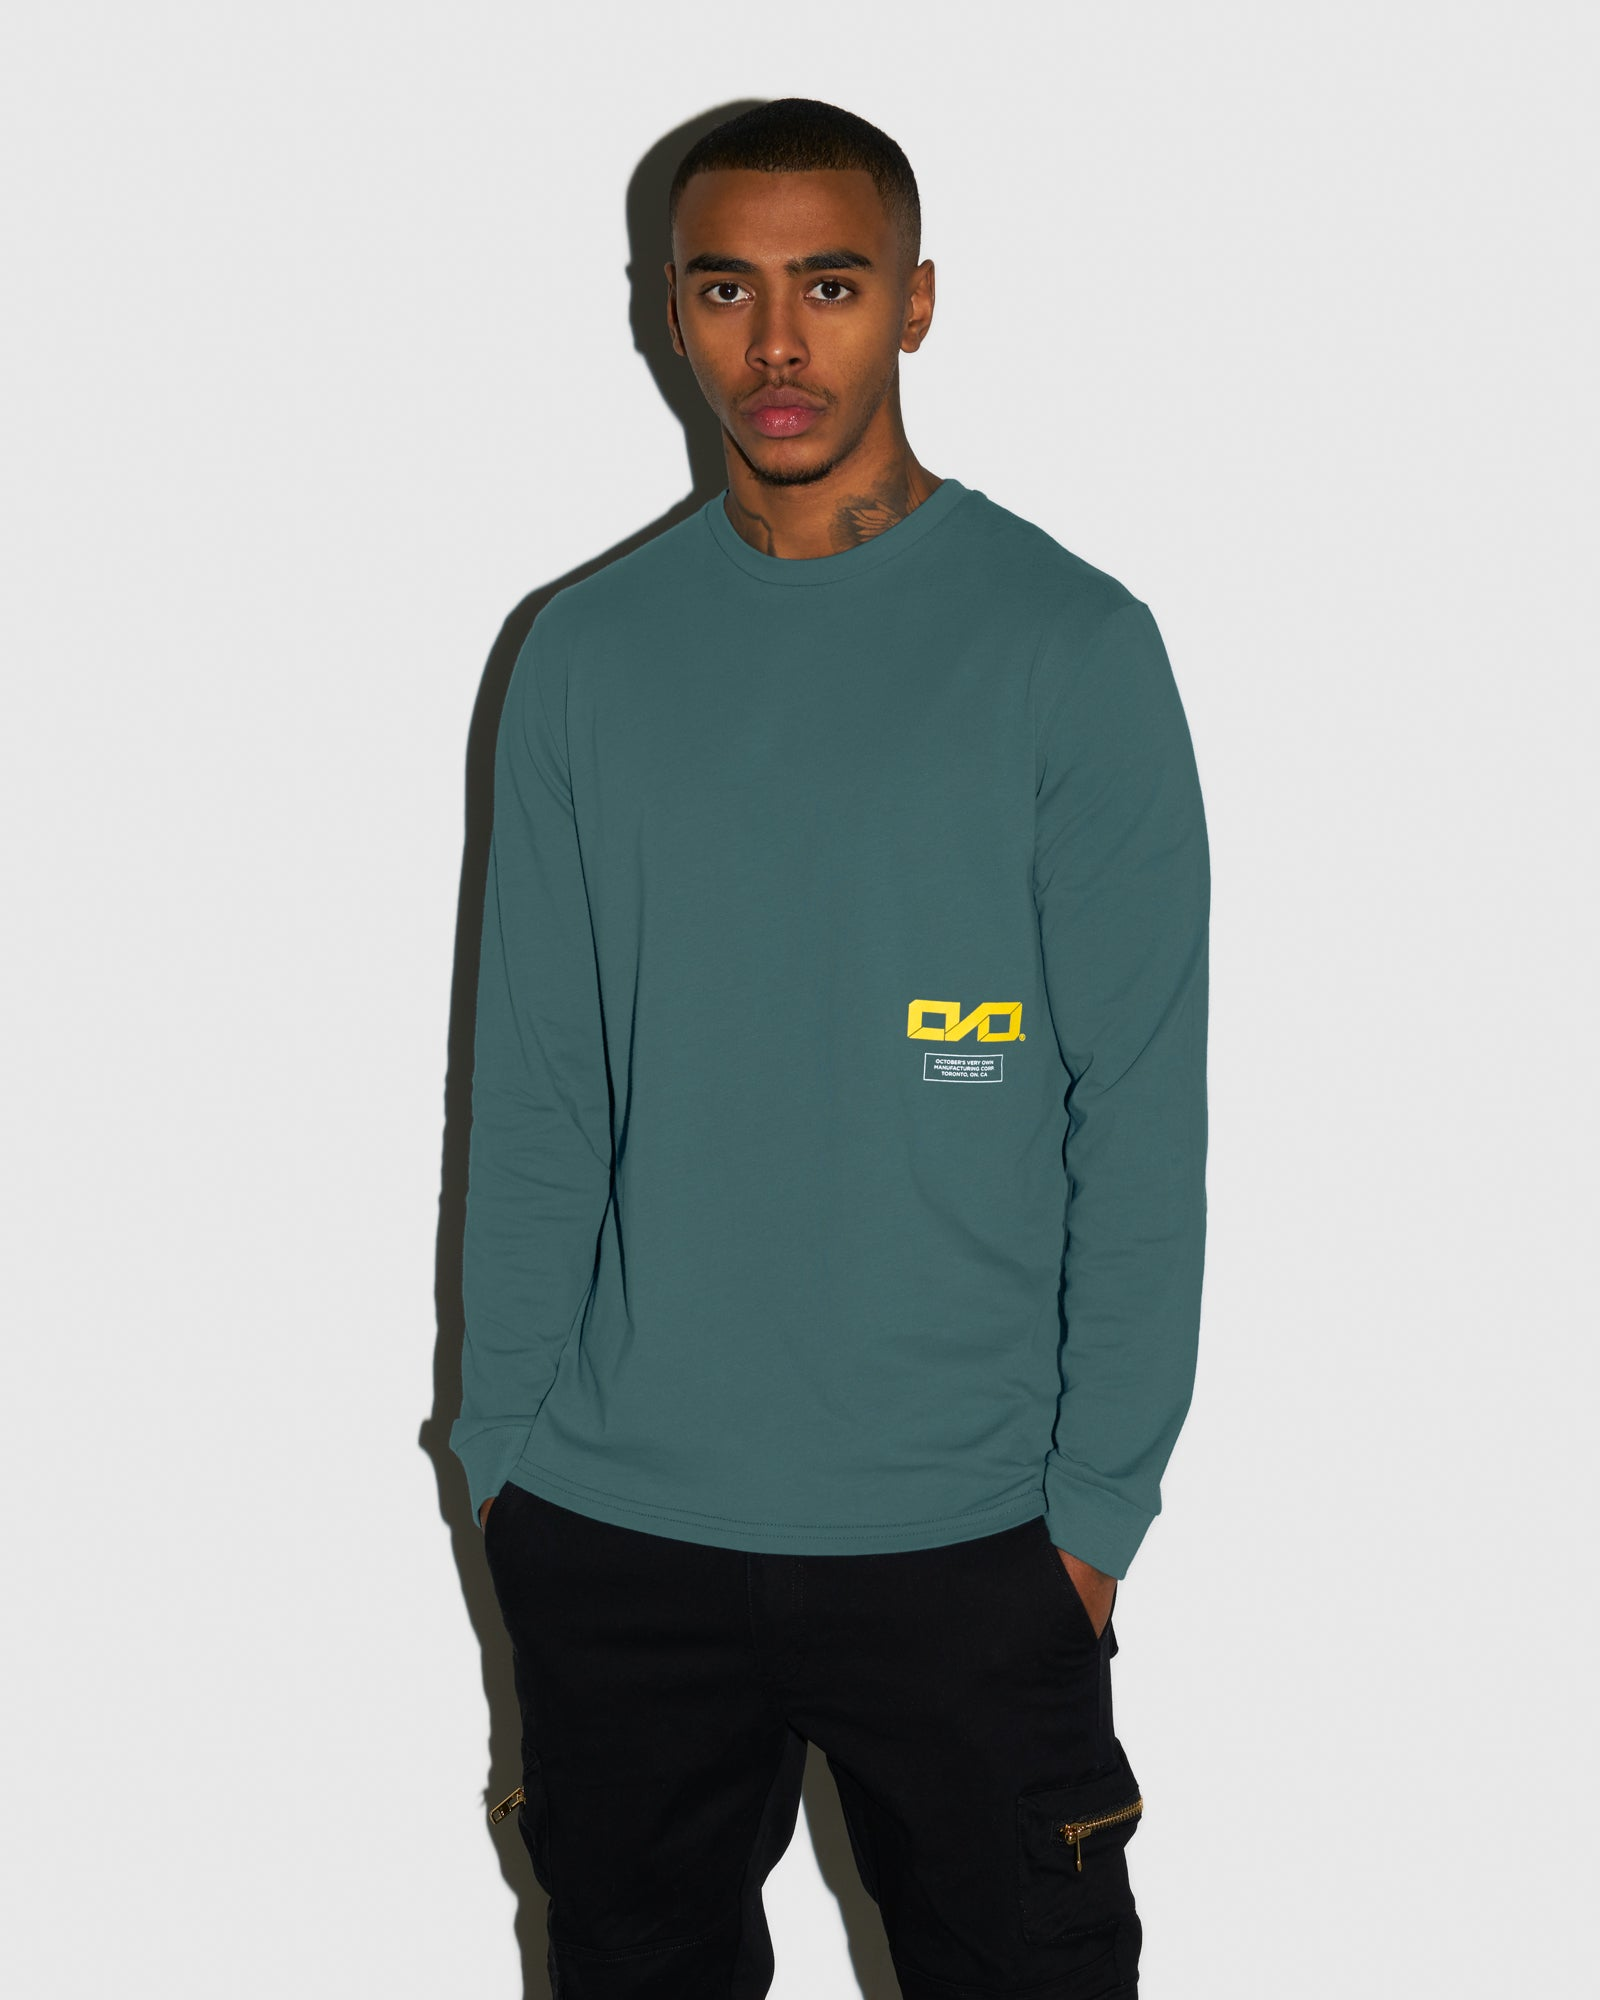 OVO INDUSTRIES LONGSLEEVE T-SHIRT - STEELE BLUE IMAGE #2